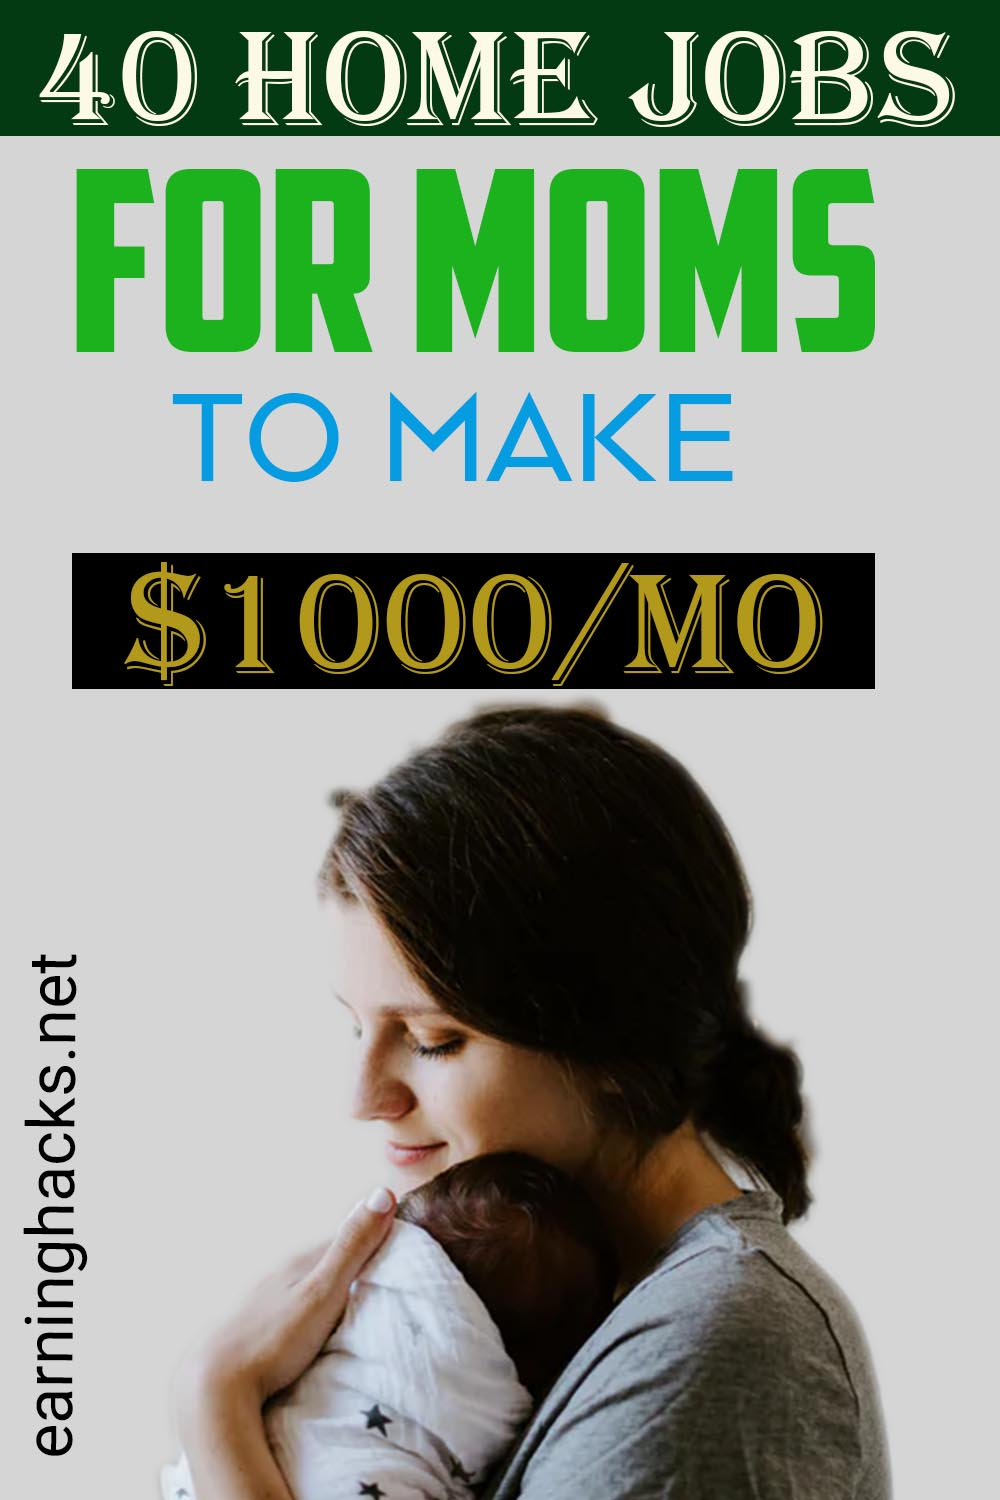 40 Home Jobs For Moms To Make $1000/MO